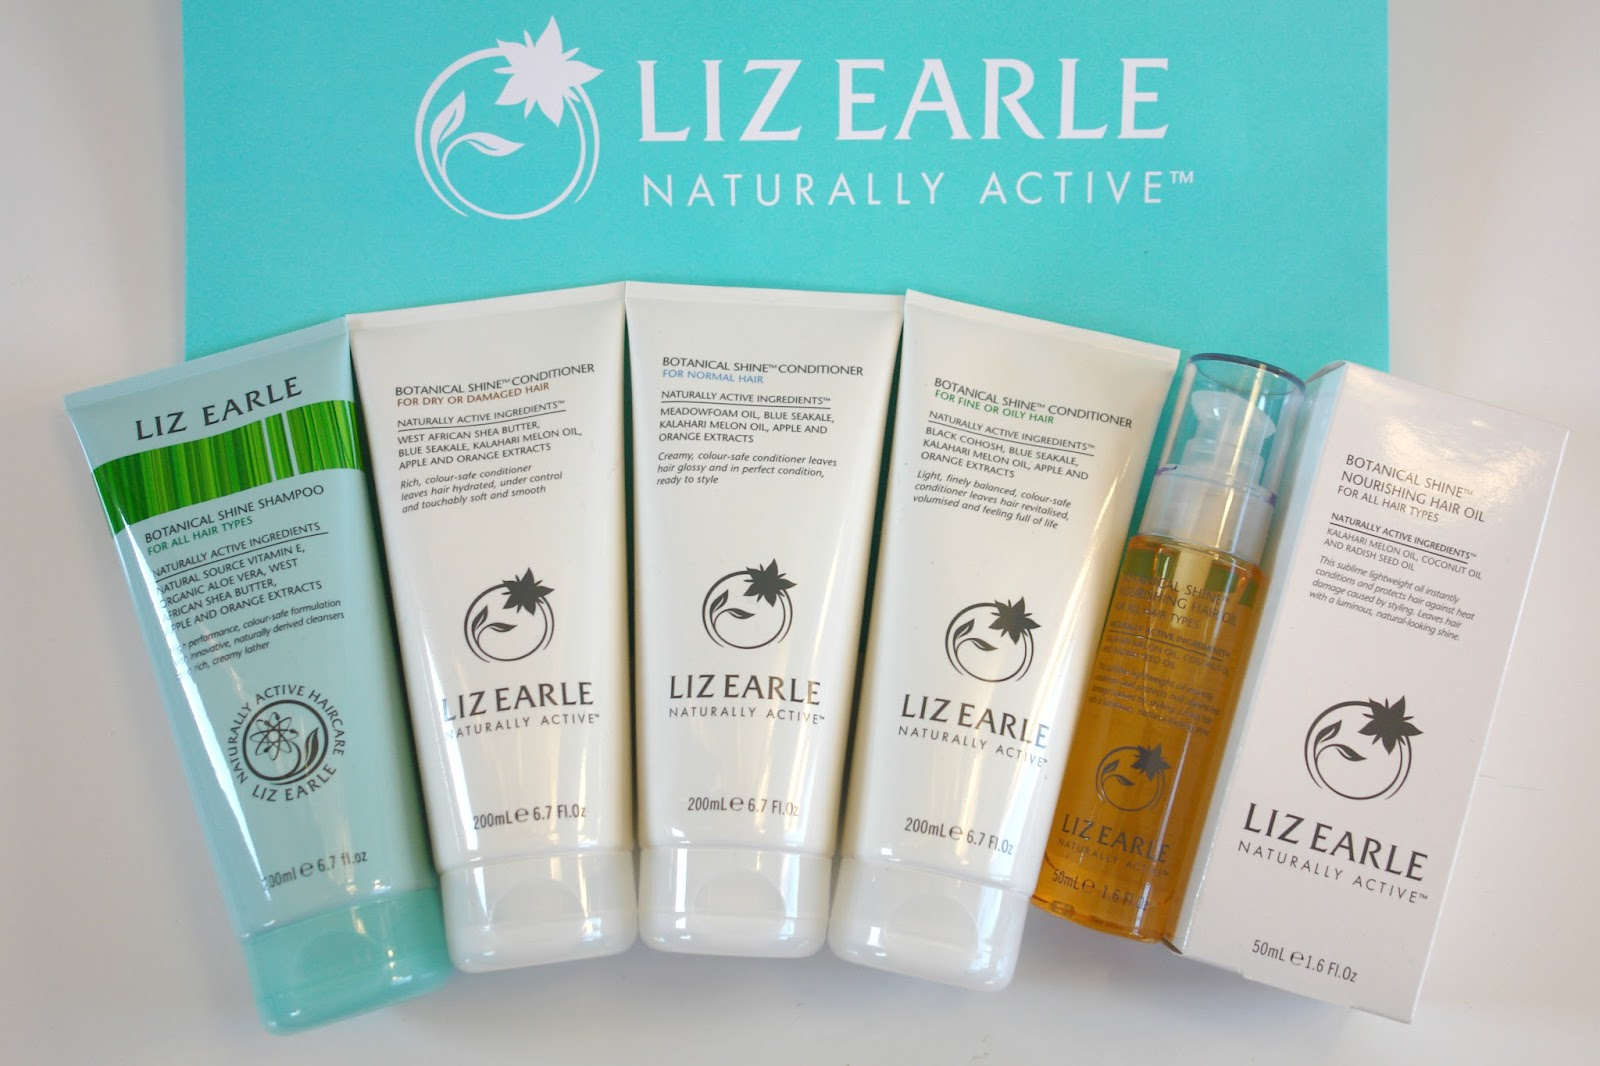 Liz Earle Botanical Shine Haircare range, Liz Earle Botanical Shine Shampoo, Liz Earle Botanical Shine Conditioner for normal, dry or damaged and oily hair, Liz Earle Botanical Shine Nourishing Hair Oil, beauty, hair, Liz Earle, review,